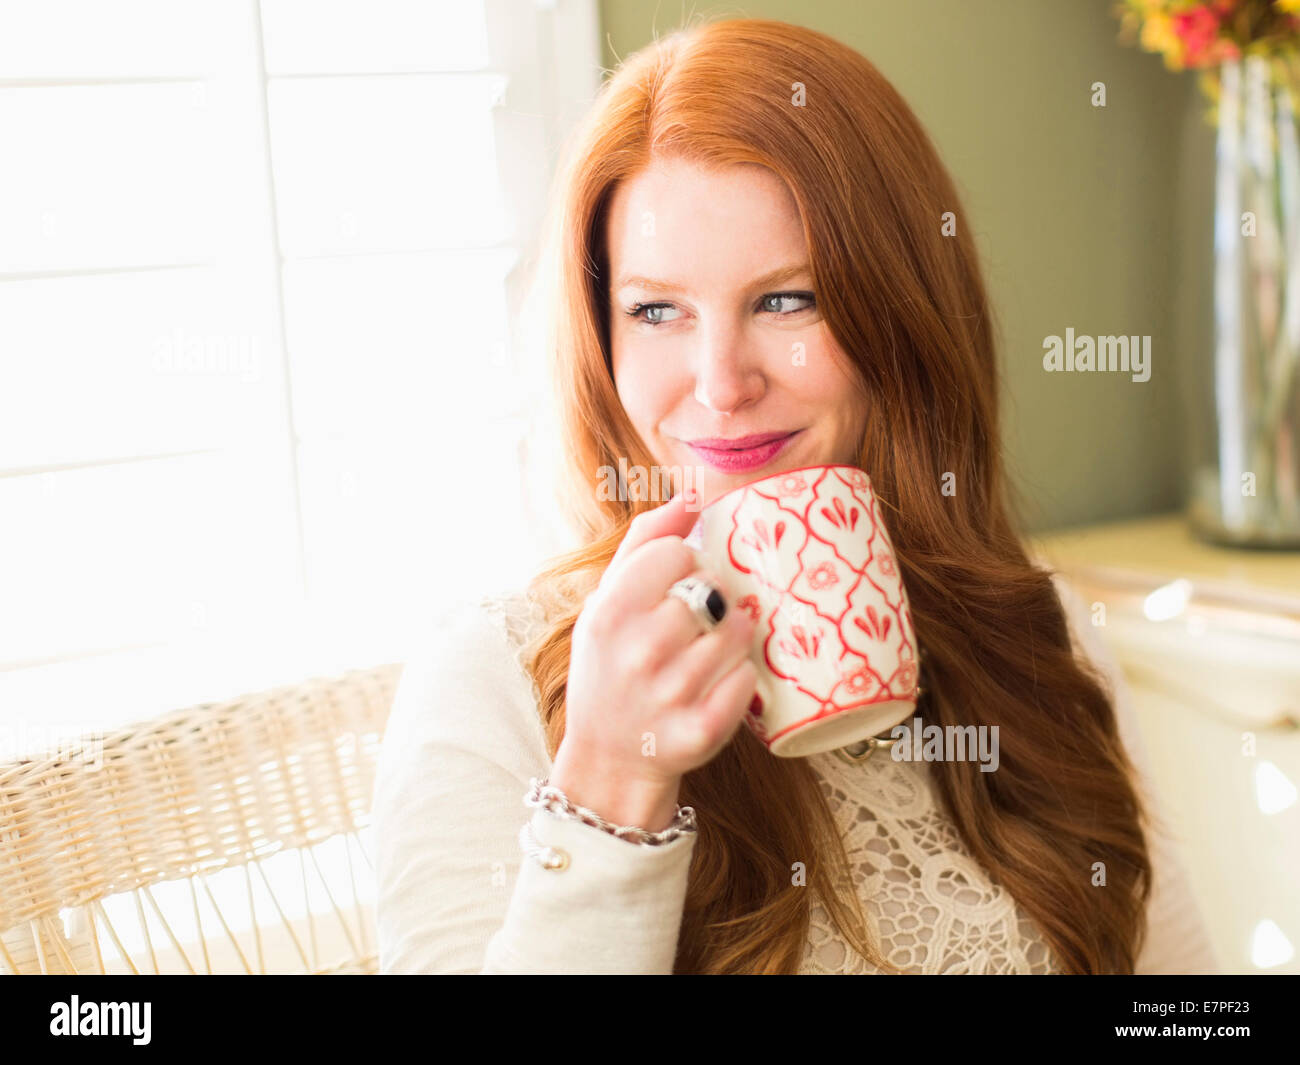 Mid adult woman drinking from coffee mug Photo Stock